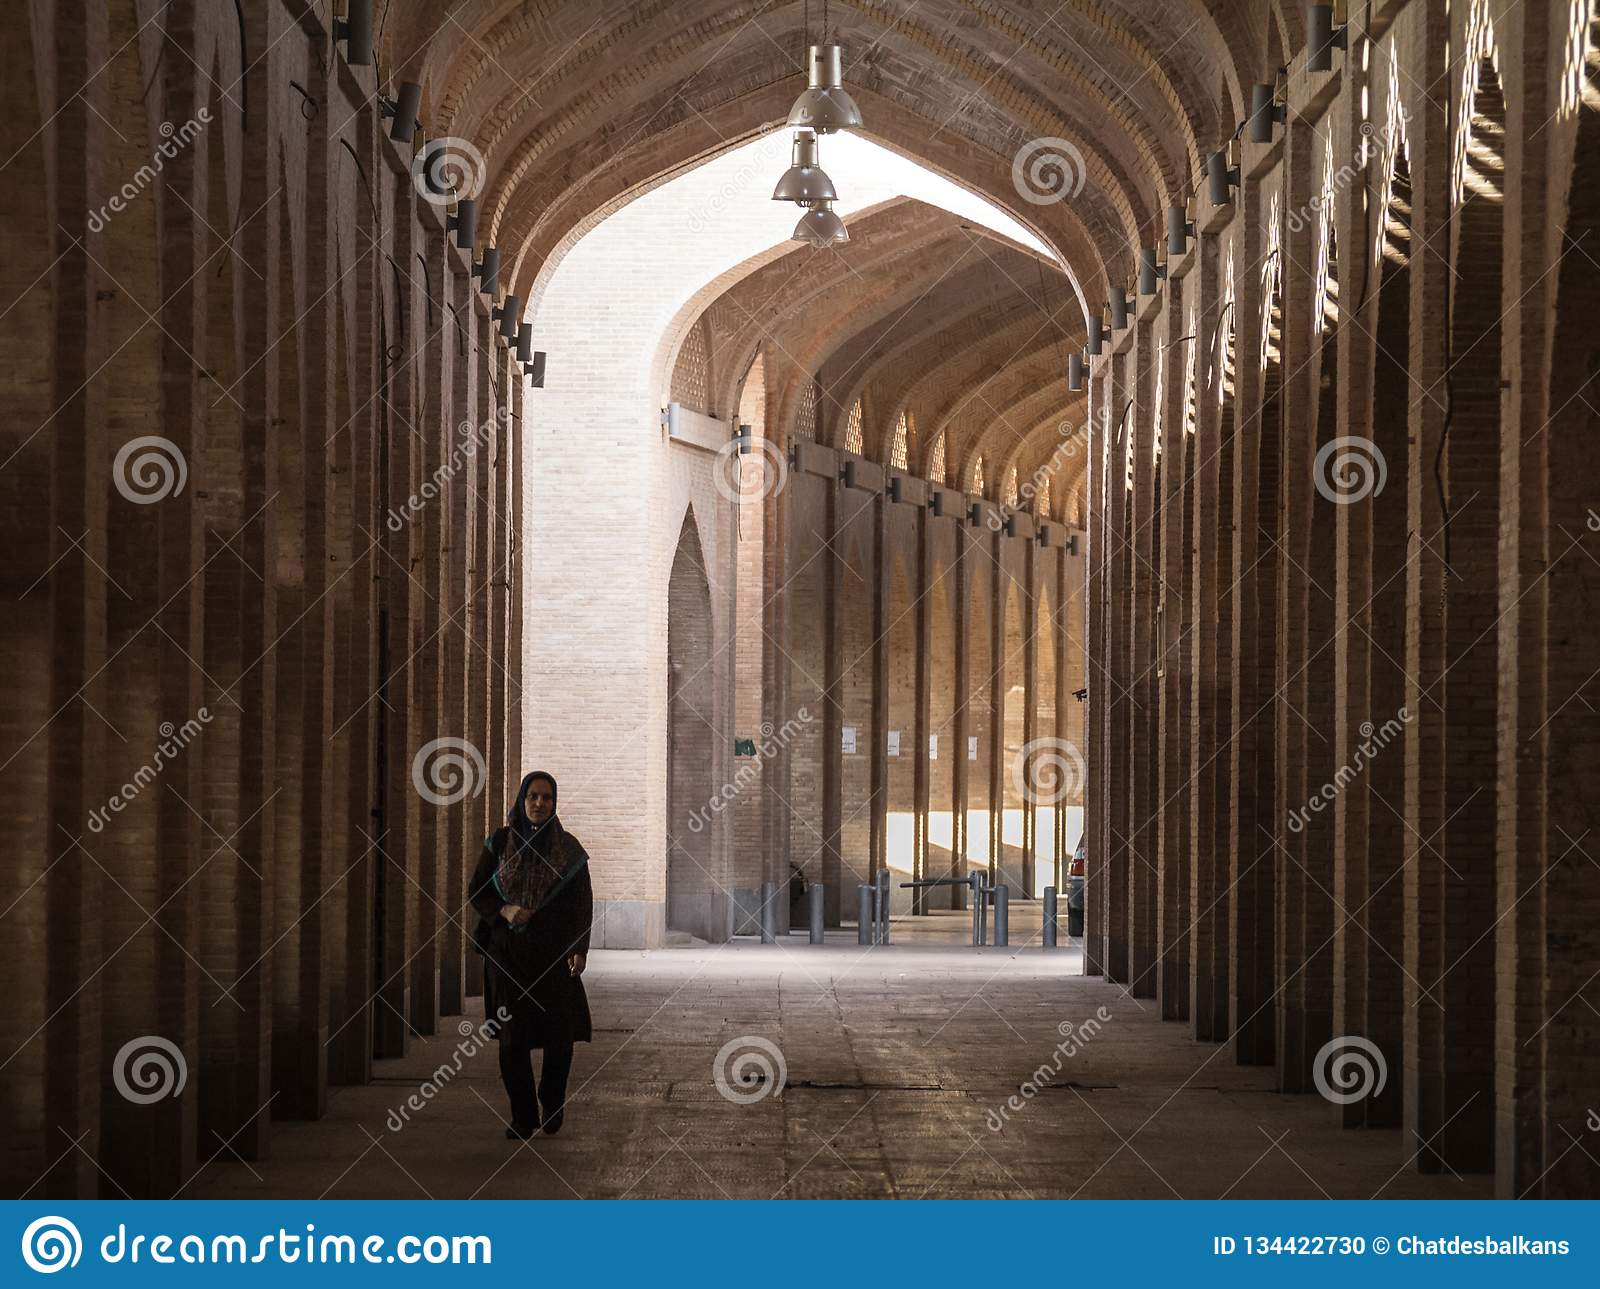 c8f3ee828275 Woman Wearing The Islamic Veil Walking In A Street Of The Covered ...